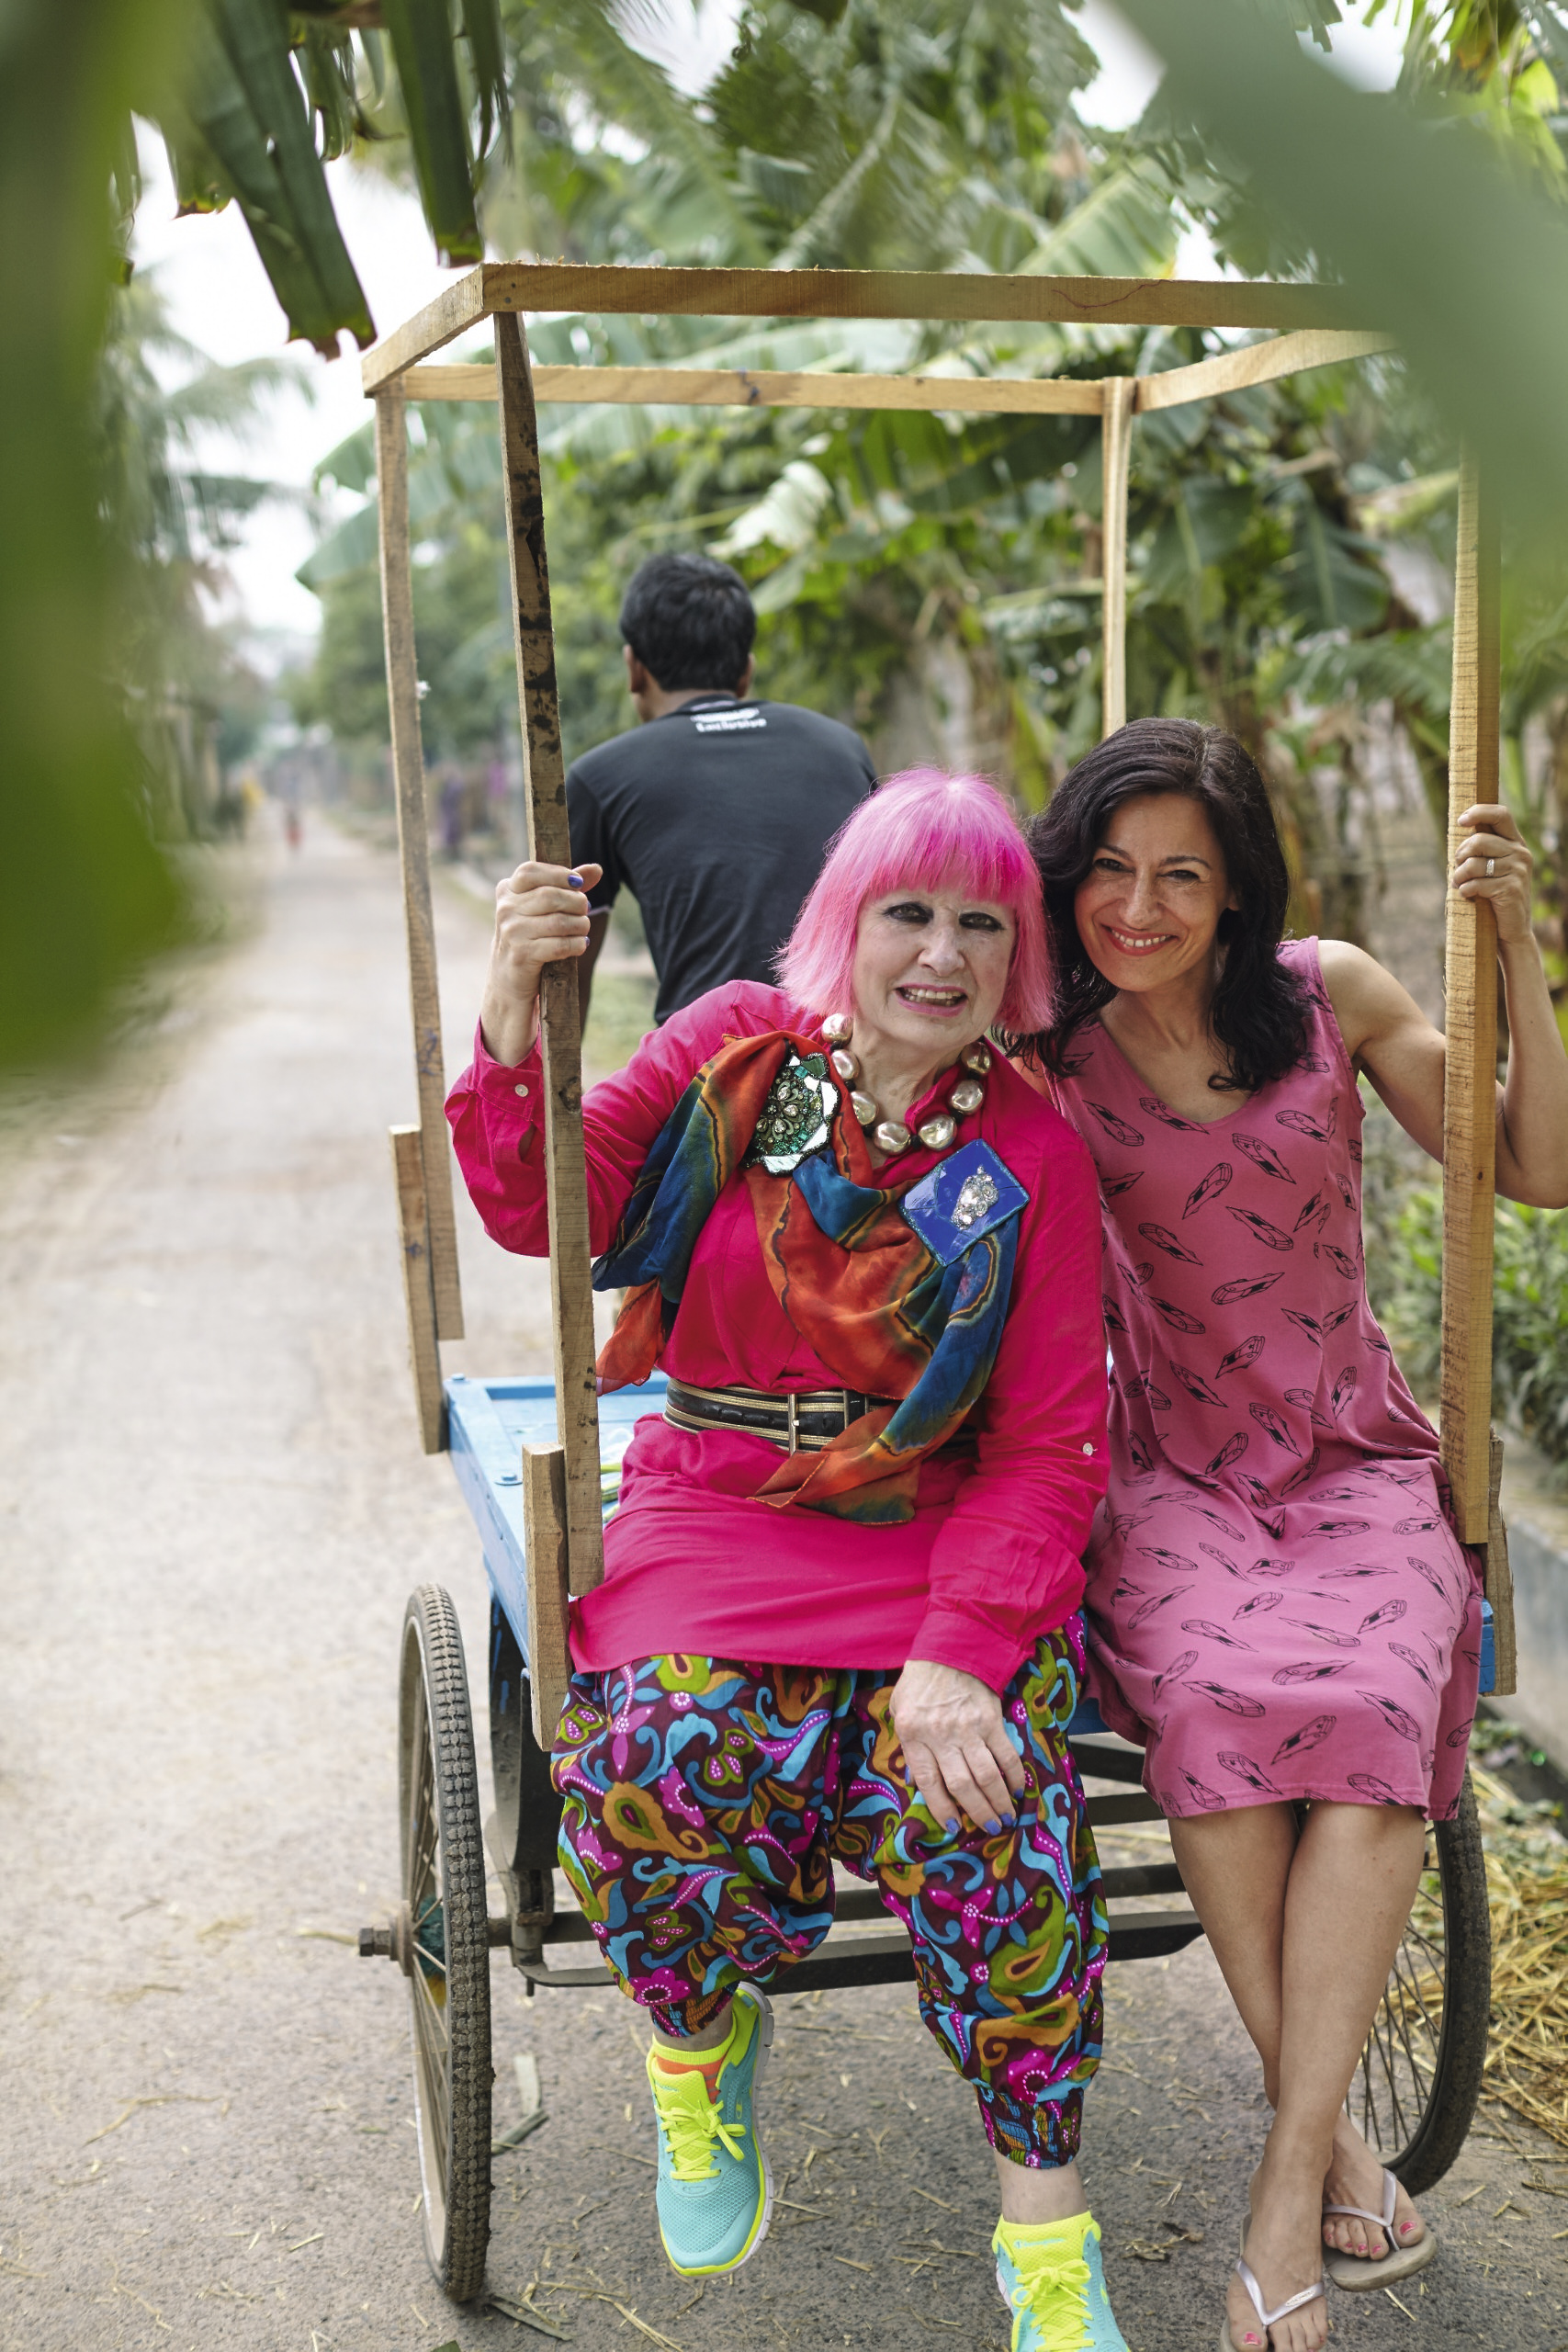 Zandra Rhodes with Safia Minney, CEO and Founder of People Tree, in Bangladesh in March 2015. Picture Belongs to People Tree.